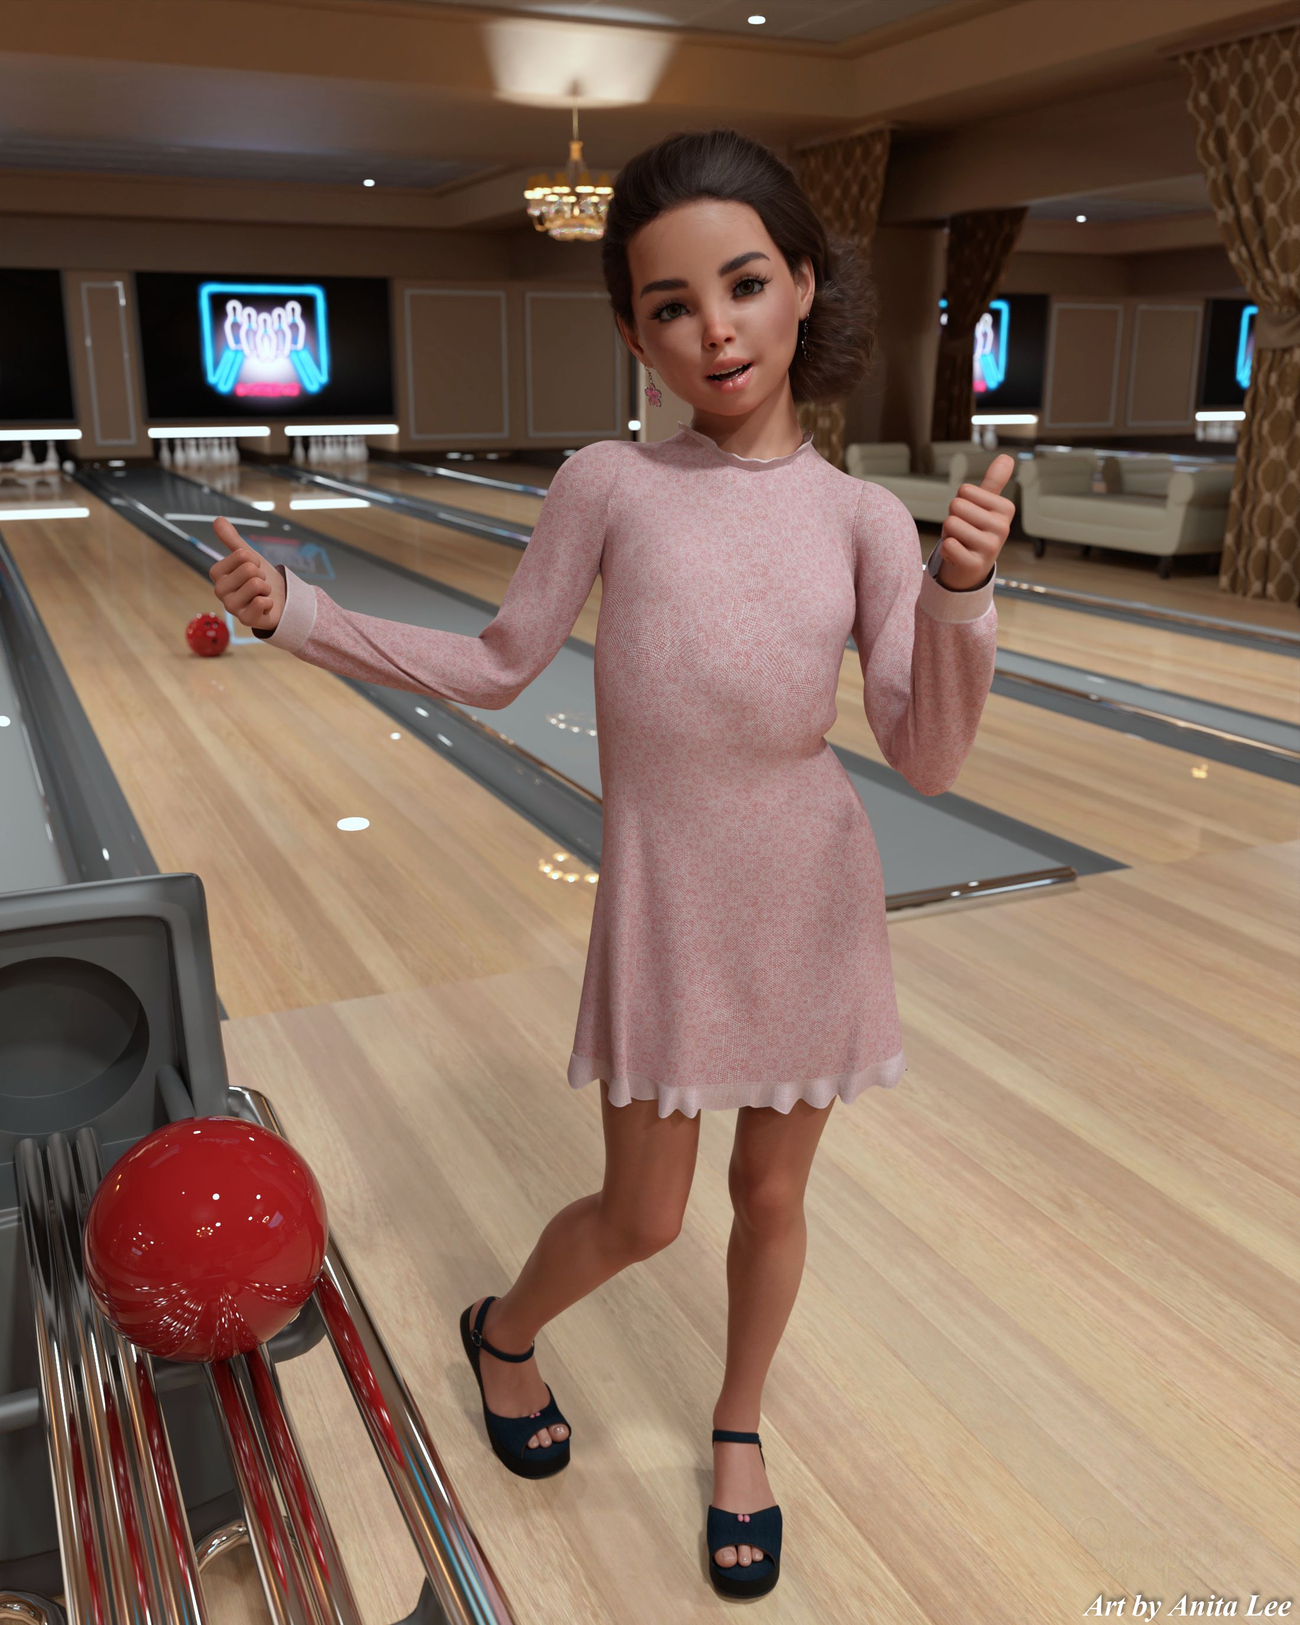 Bowling by anitalee